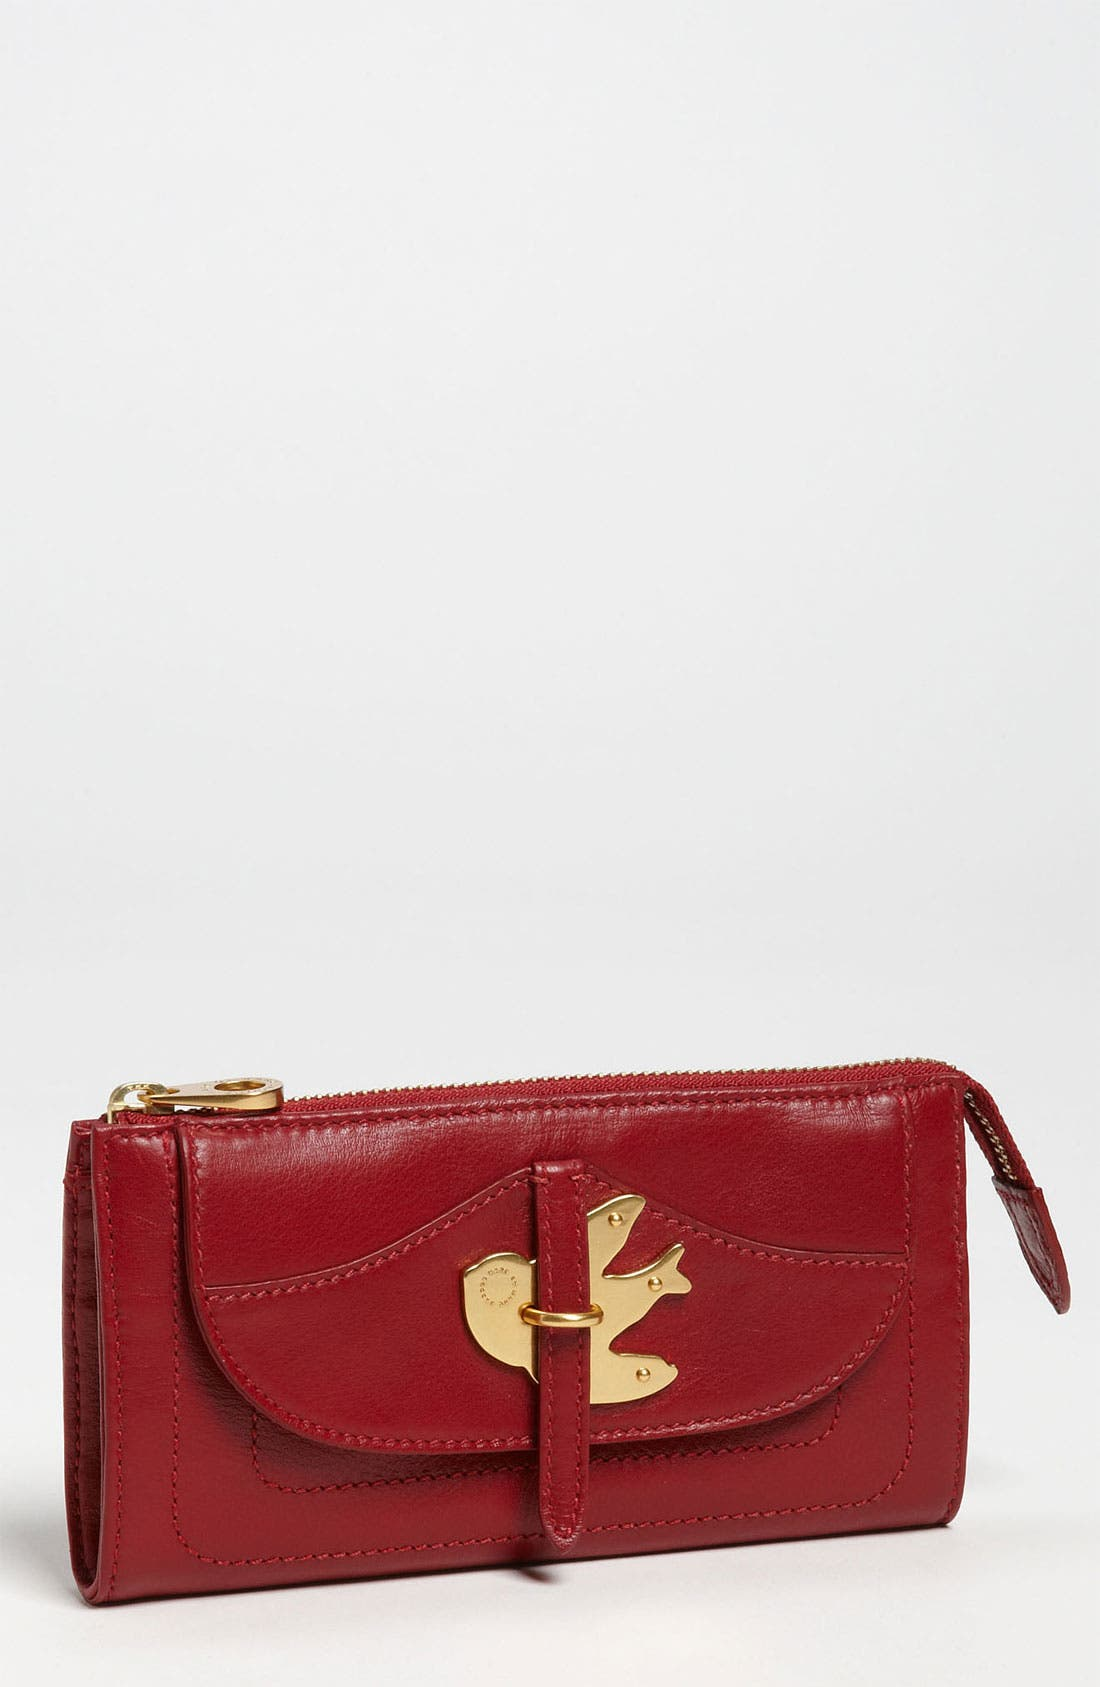 Alternate Image 1 Selected - MARC BY MARC JACOBS 'Petal to the Metal' Zip Clutch Wallet